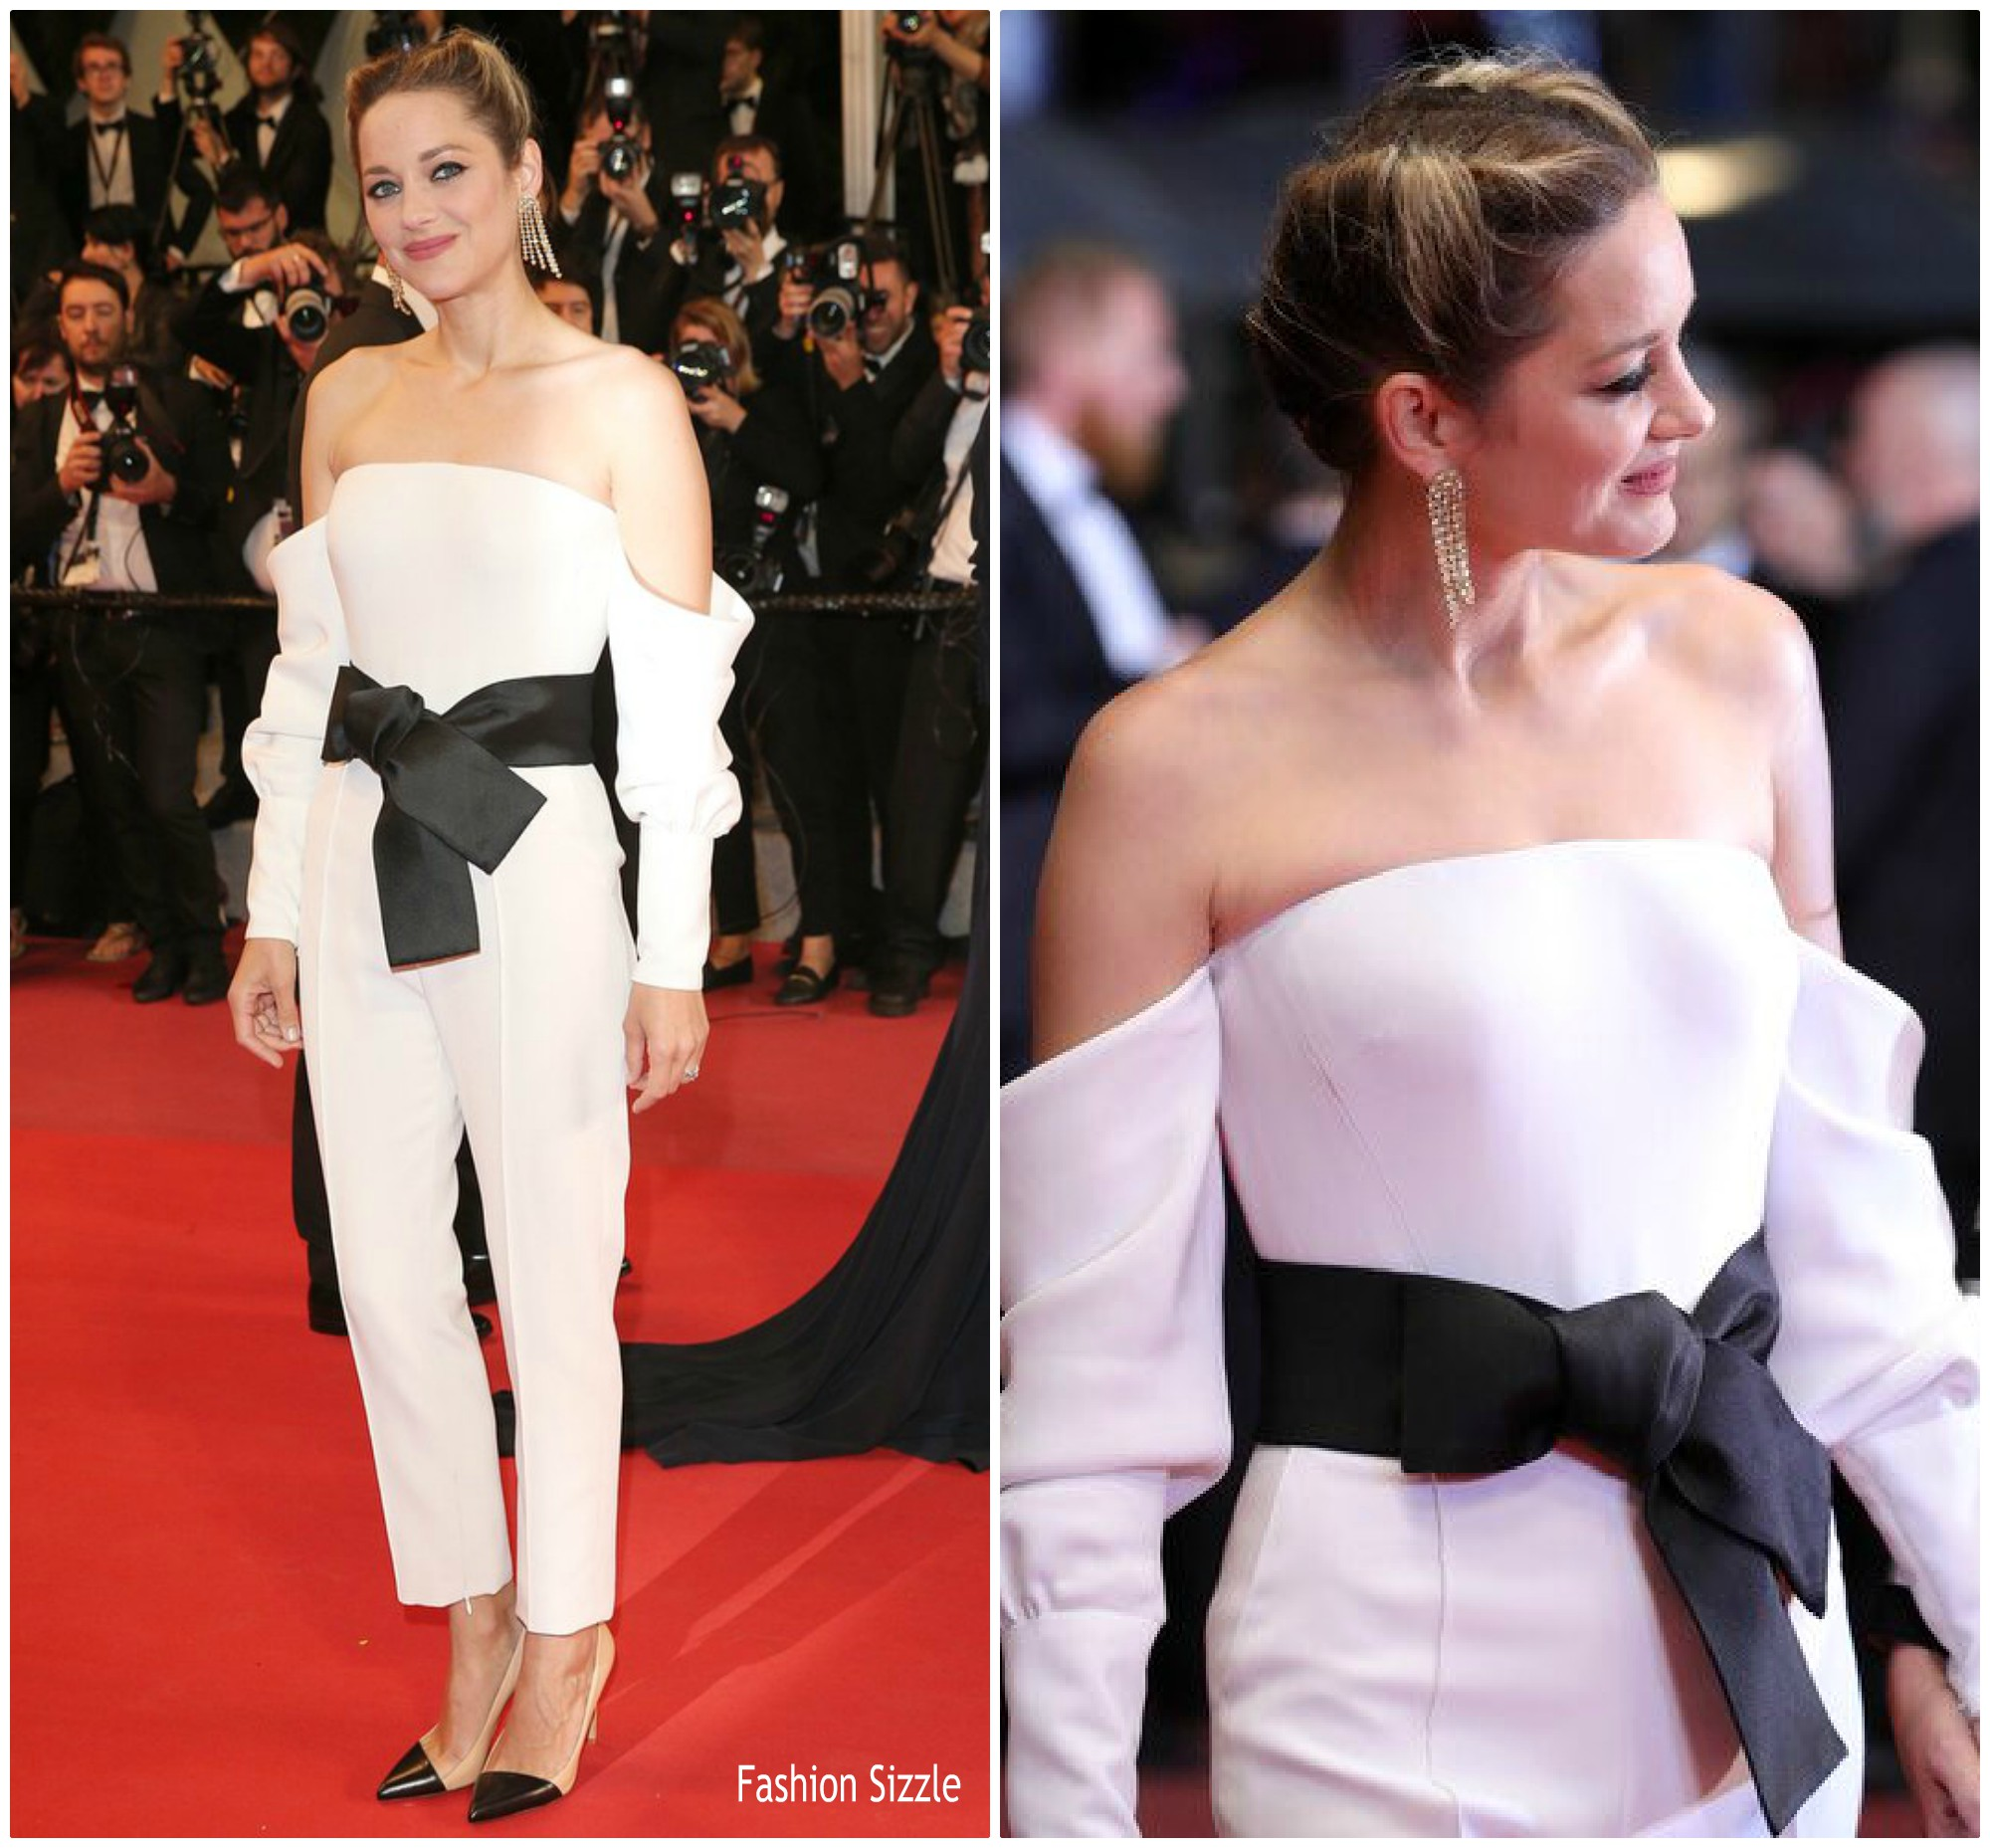 marion-cotillard-in-armani-prive-angel-face-guele-d-ange-cannes-film-festival-premiere